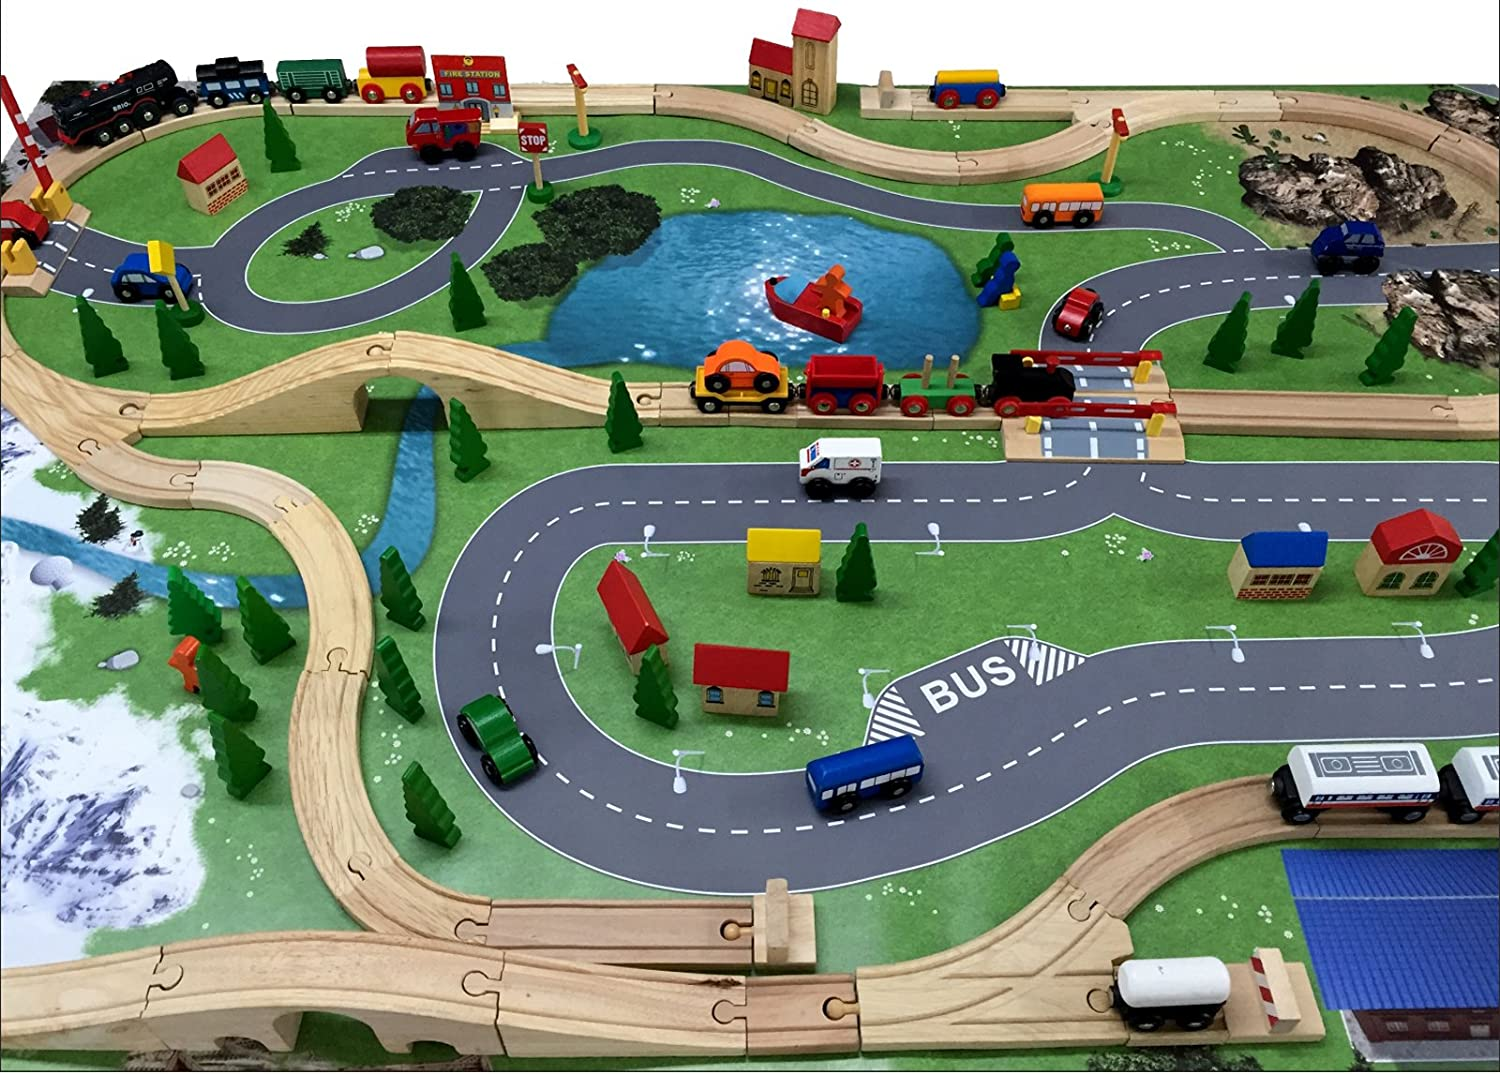 Dimensions 150 x 100 cm for the Children`s Room SM13 Train//Wooden Railway Game Mat//Play Carpet